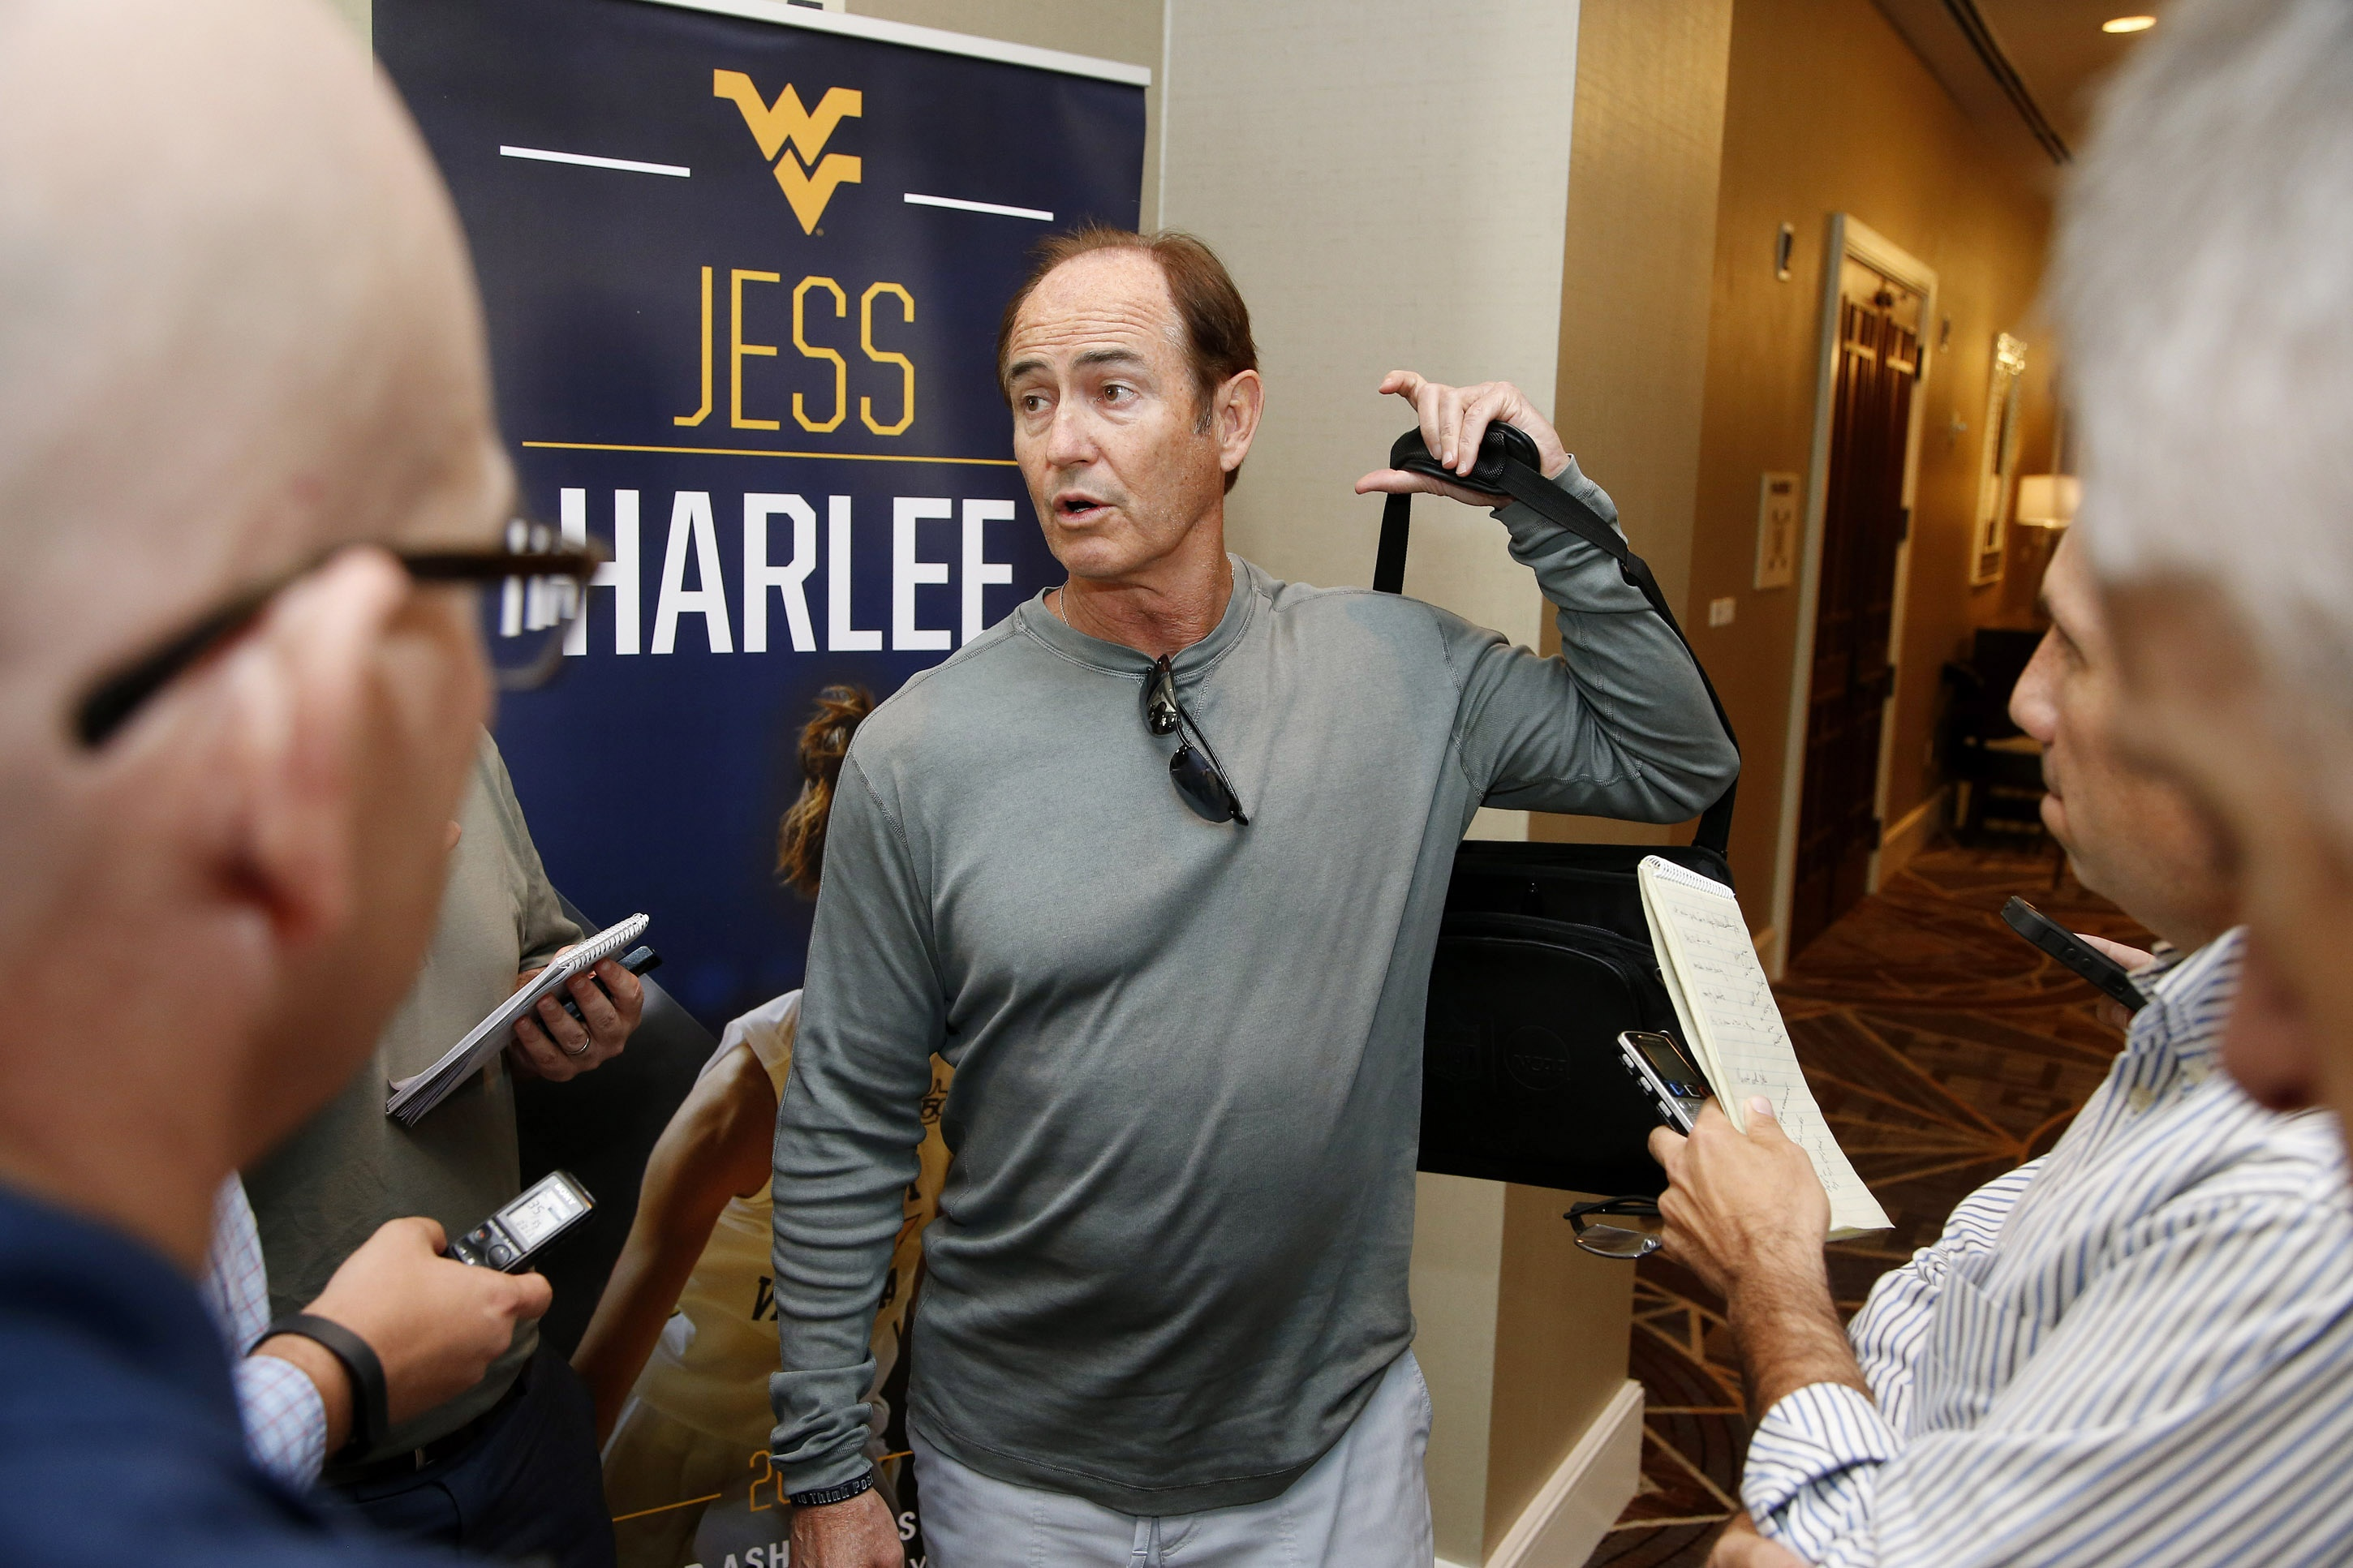 Baylor head football coach Art Briles talks with reporters before joining other football coaches at the annual Big 12 Conference meetings Tuesday, May 5, 2015, in Phoenix. (AP Photo/Ross D. Franklin)